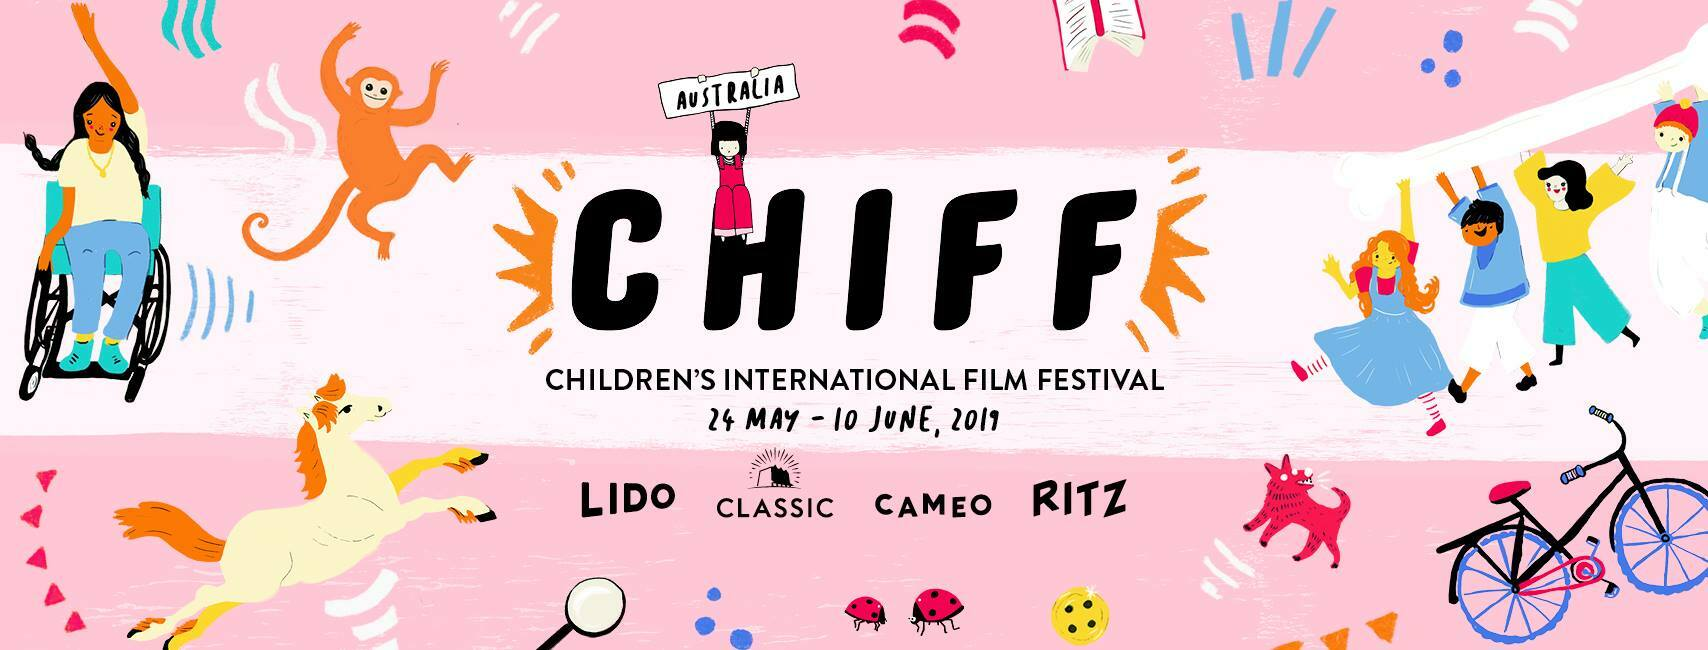 Children's International Film Festival 2019